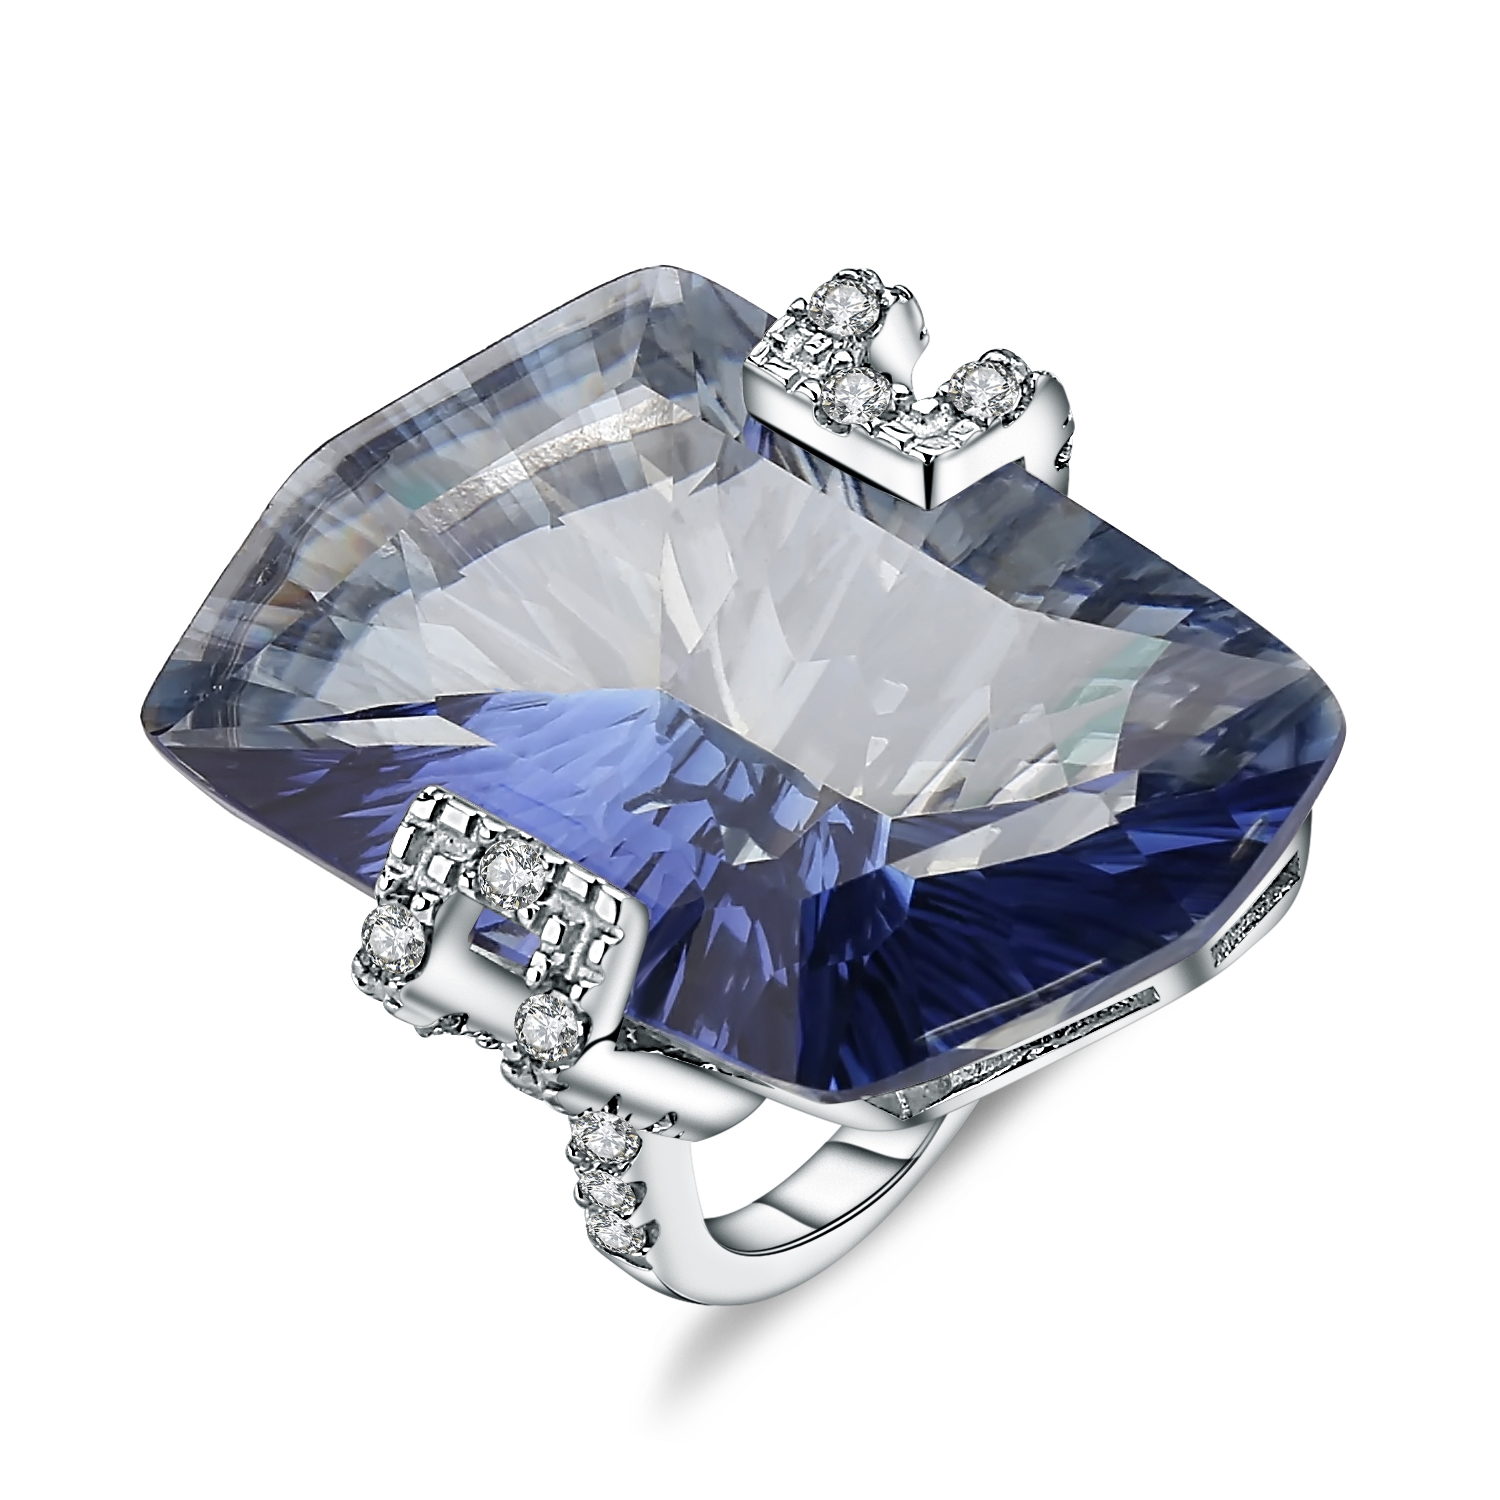 Gem's Ballet 925 Sterling Silver Cocktail Rings 21.20Ct Natural Iolite Blue Mystic Quartz Gemstone Ring For Women Fine Jewelry